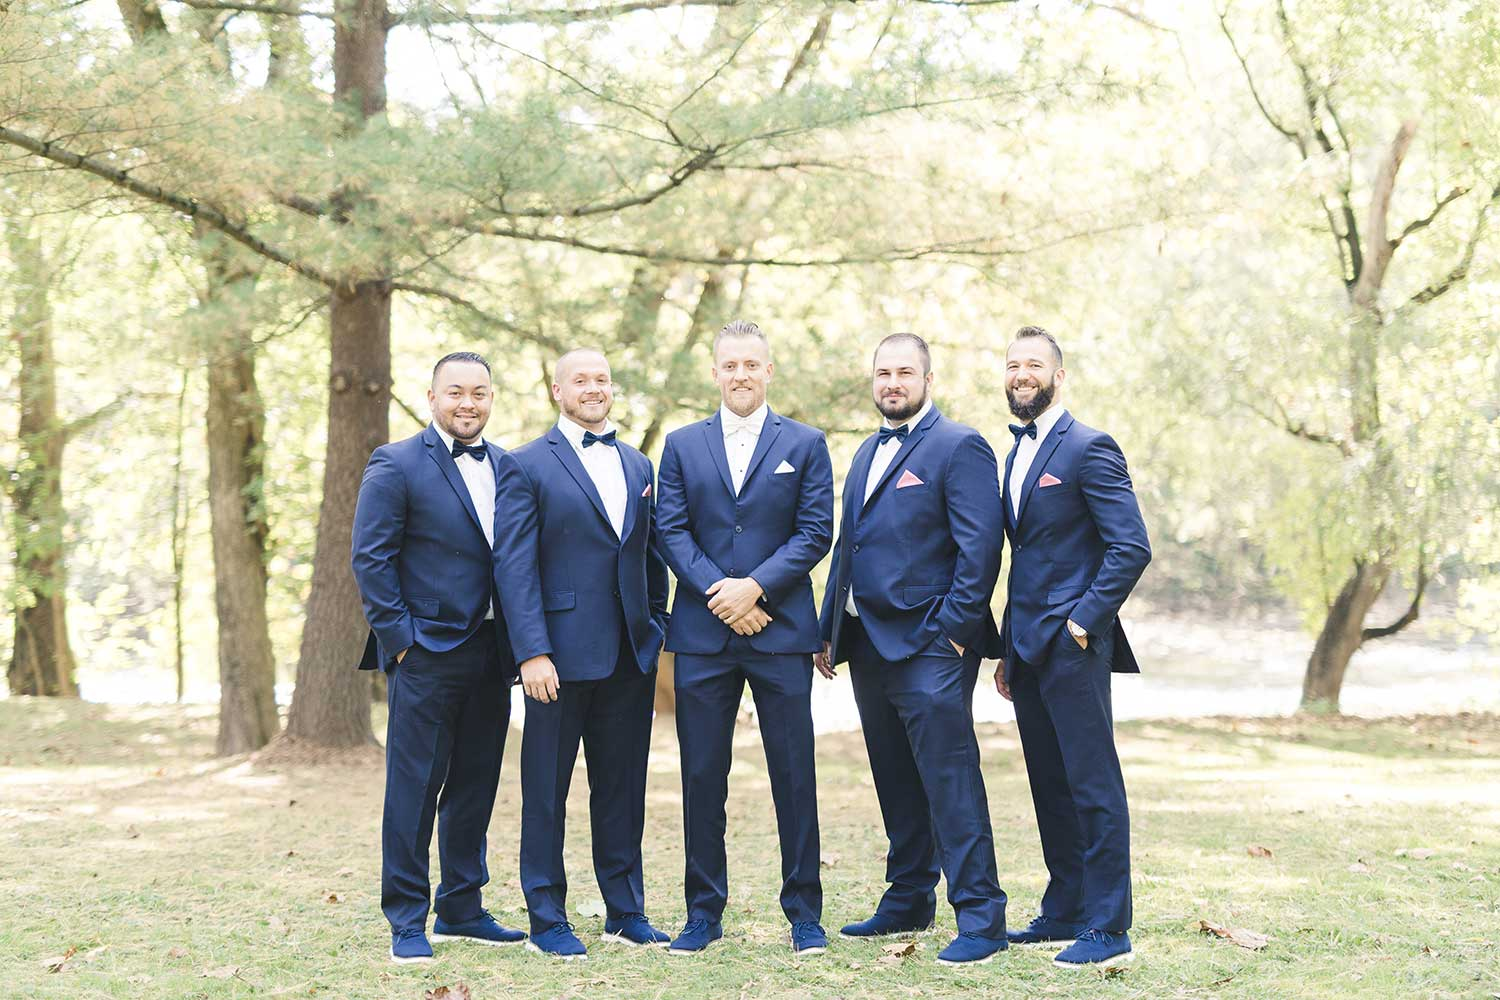 Groom and groomsmen group photo